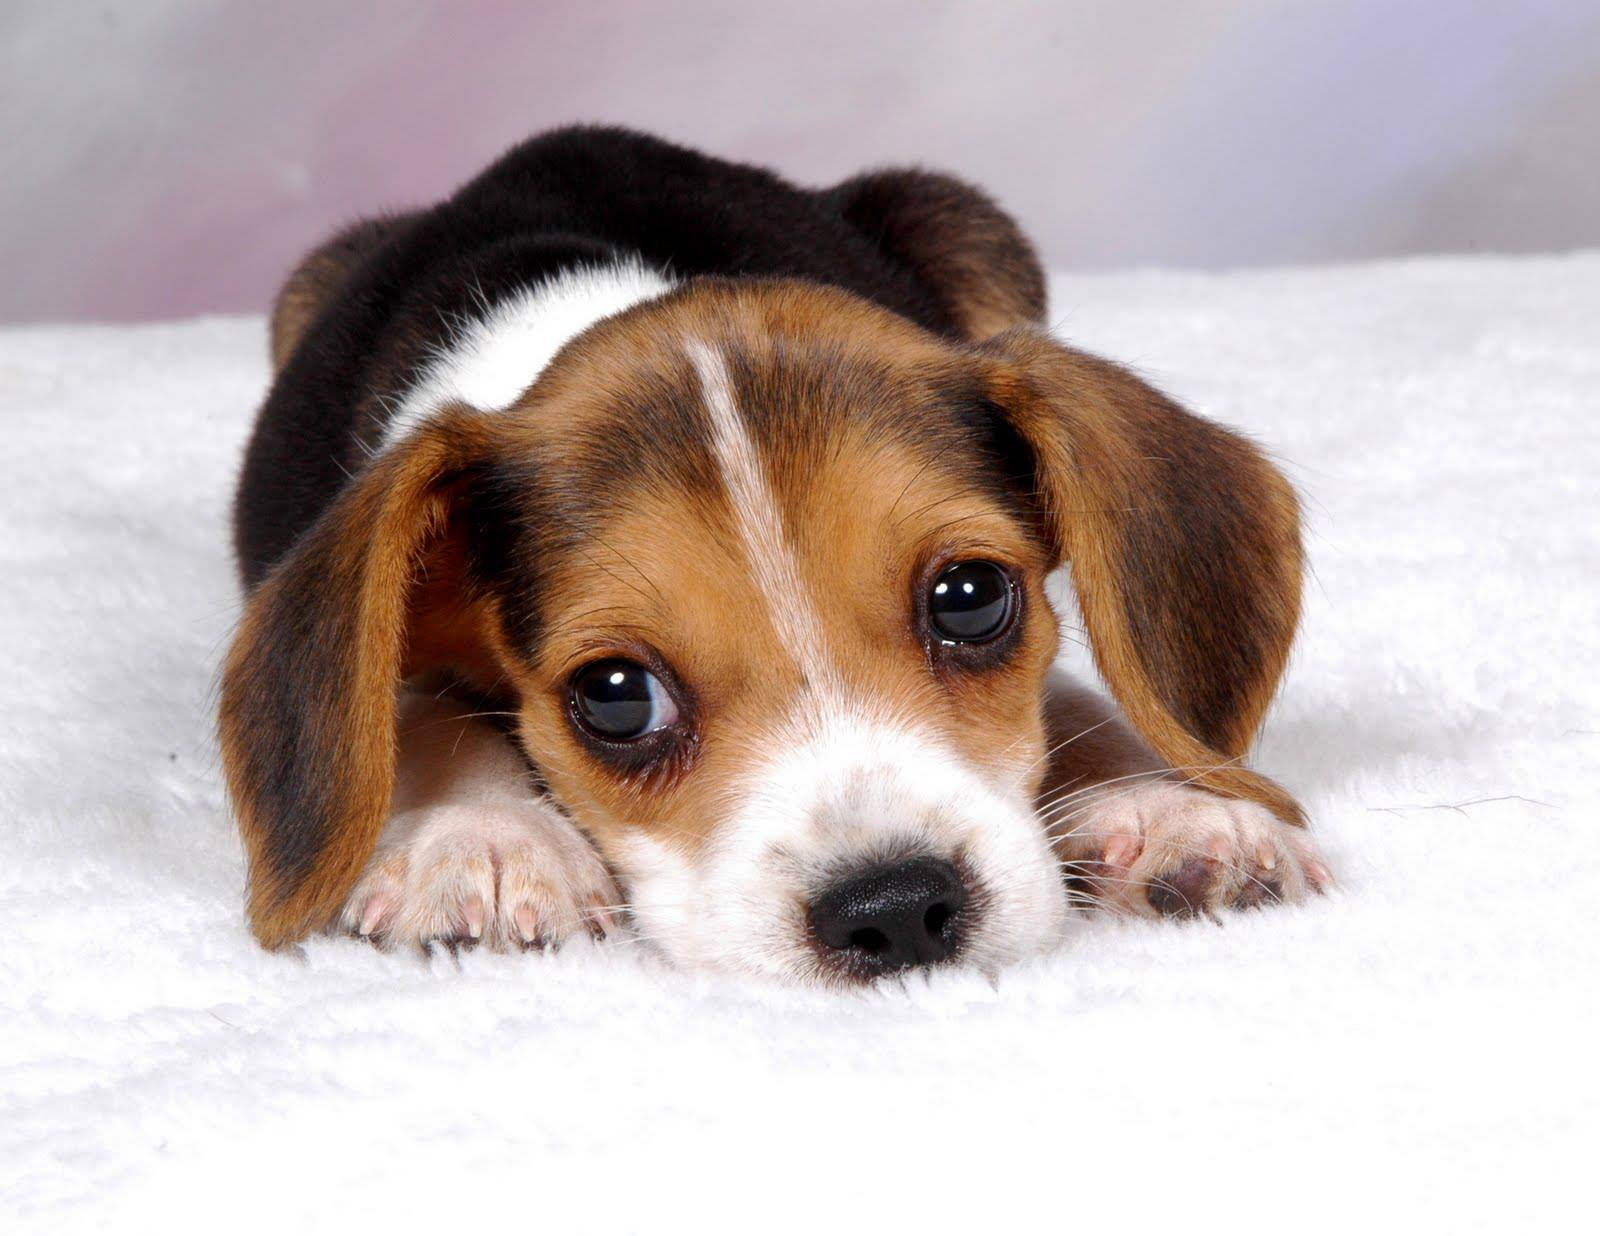 How much does a Beagle Puppy cost? - Annie Many